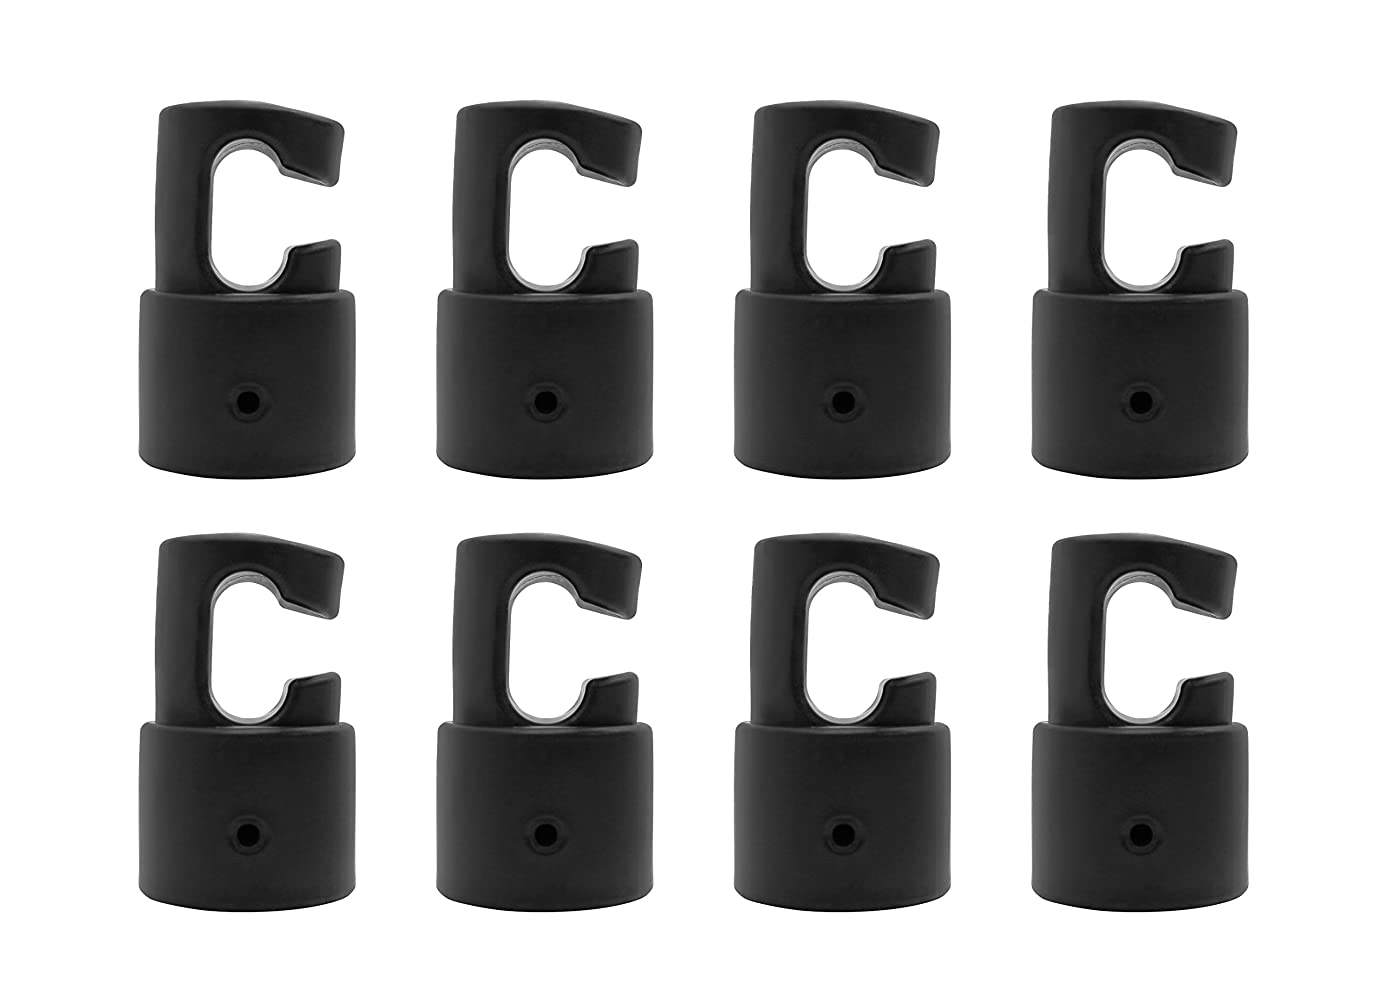 Enclosure G shaped Pole Caps to use for Fiber Glass or Metal Rings on Top of Trampoline -Fits for 1.5